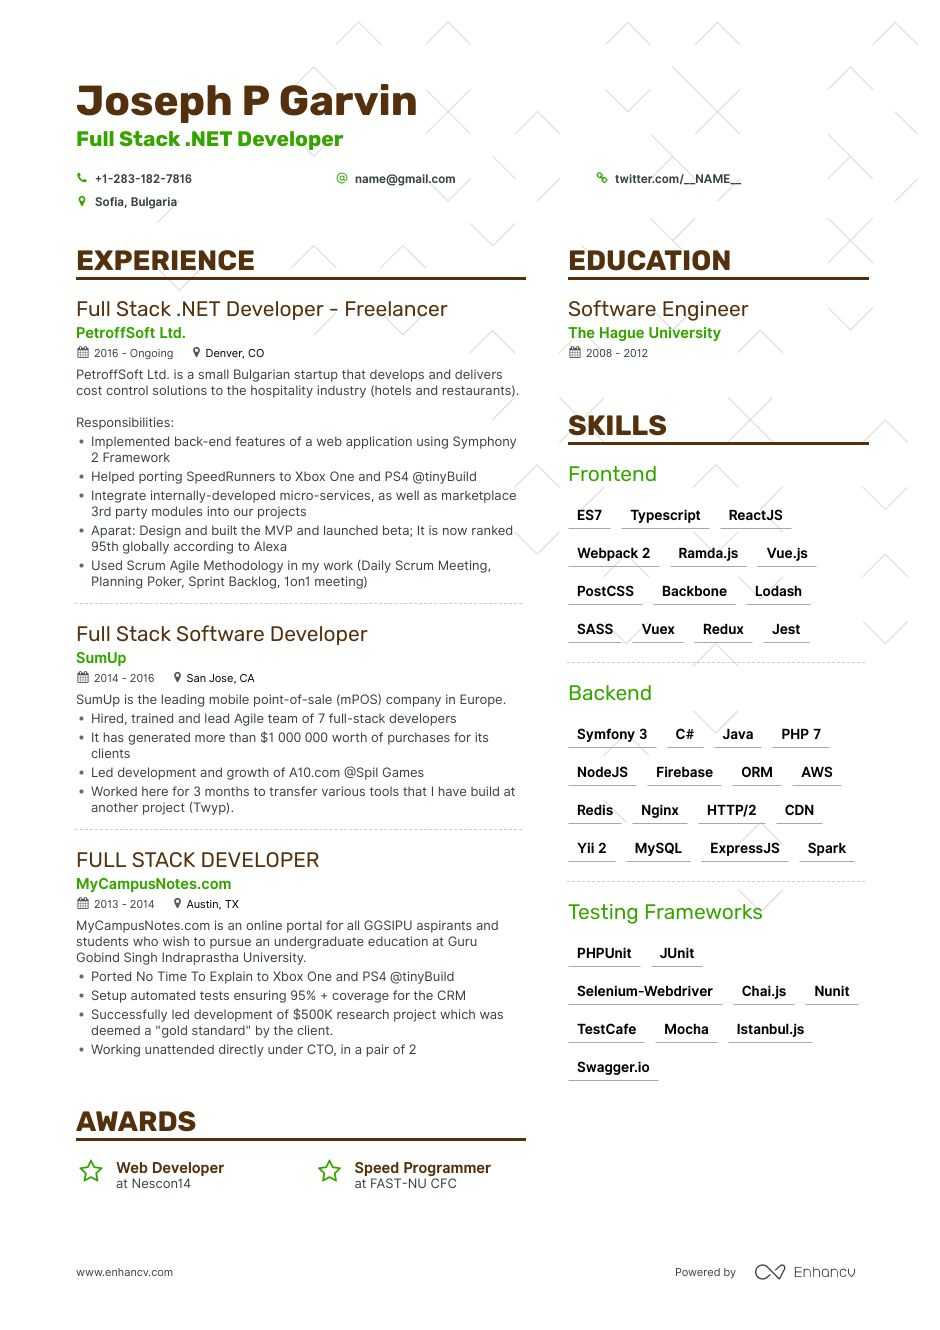 Accounting Resume Example and guide for 2019